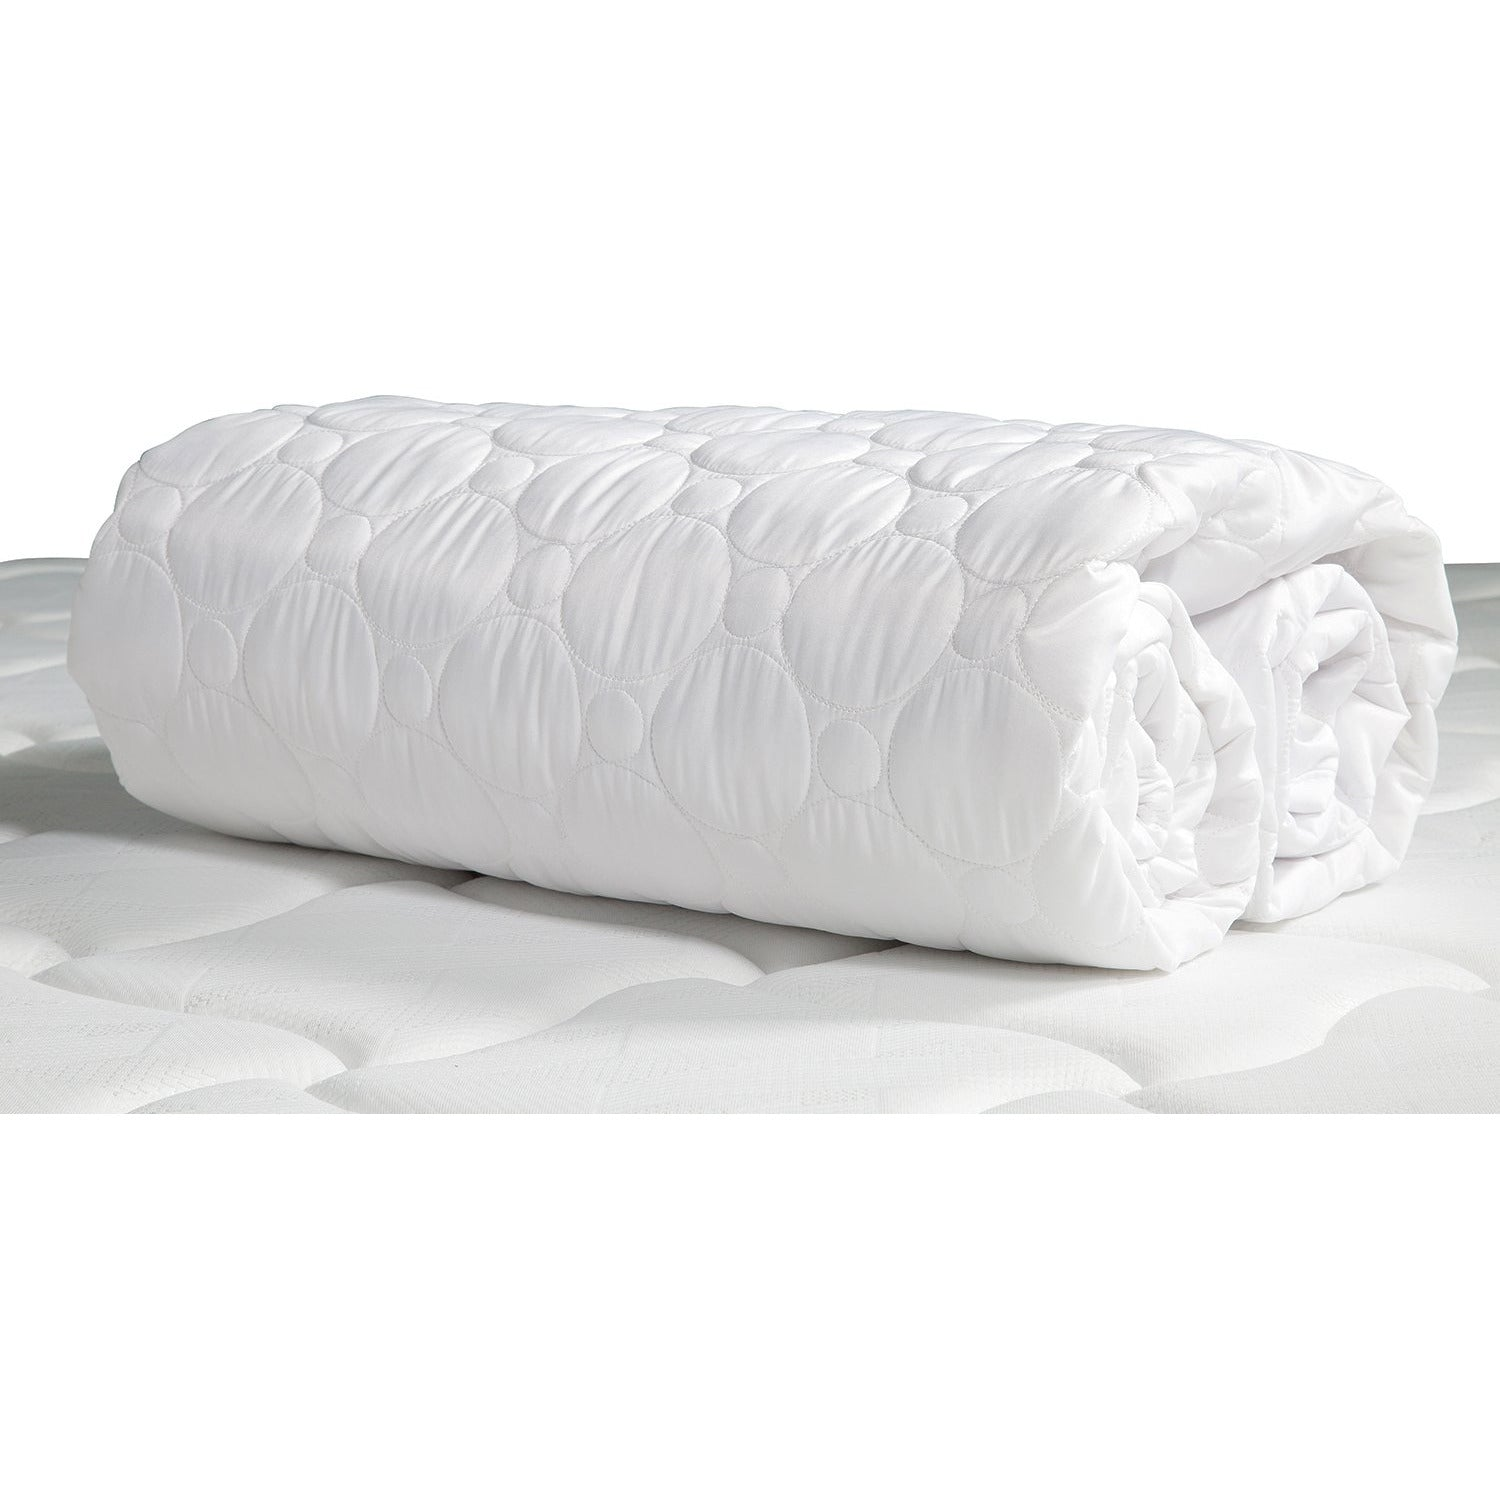 Mattress Protector Cover Cotton All Size